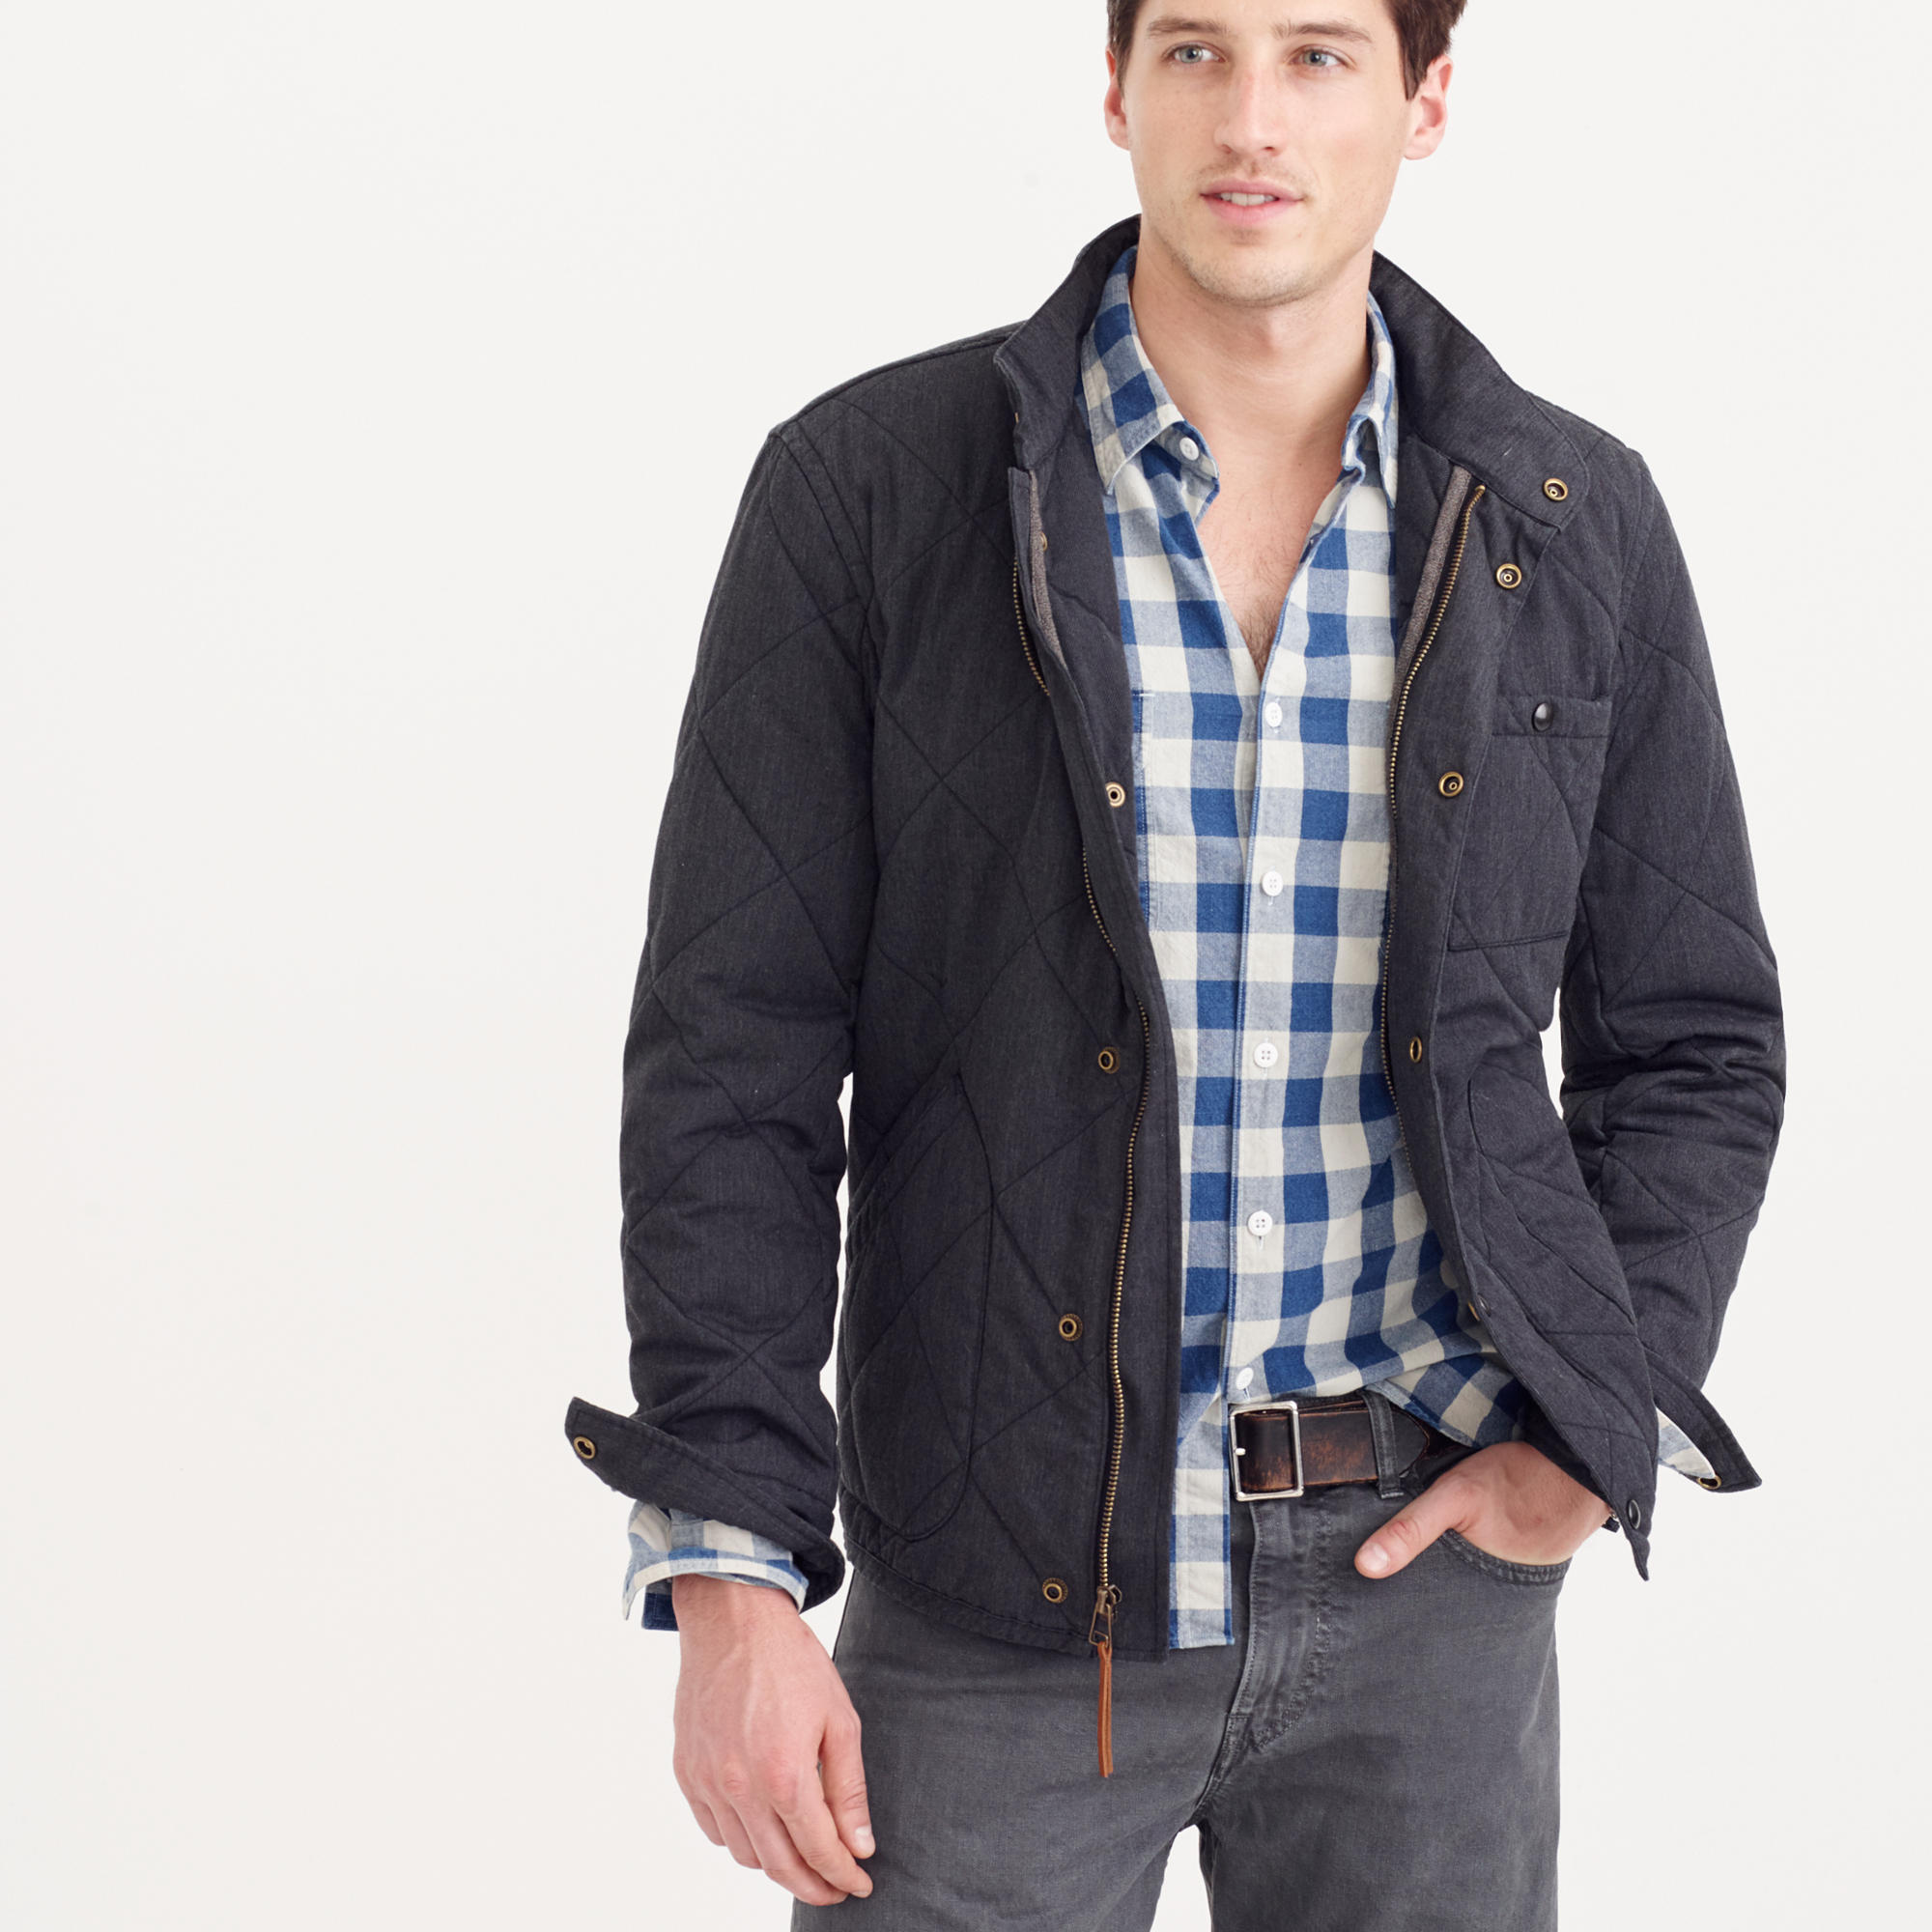 Sussex Quilted Jacket : Men's Coats & Jackets | J.Crew